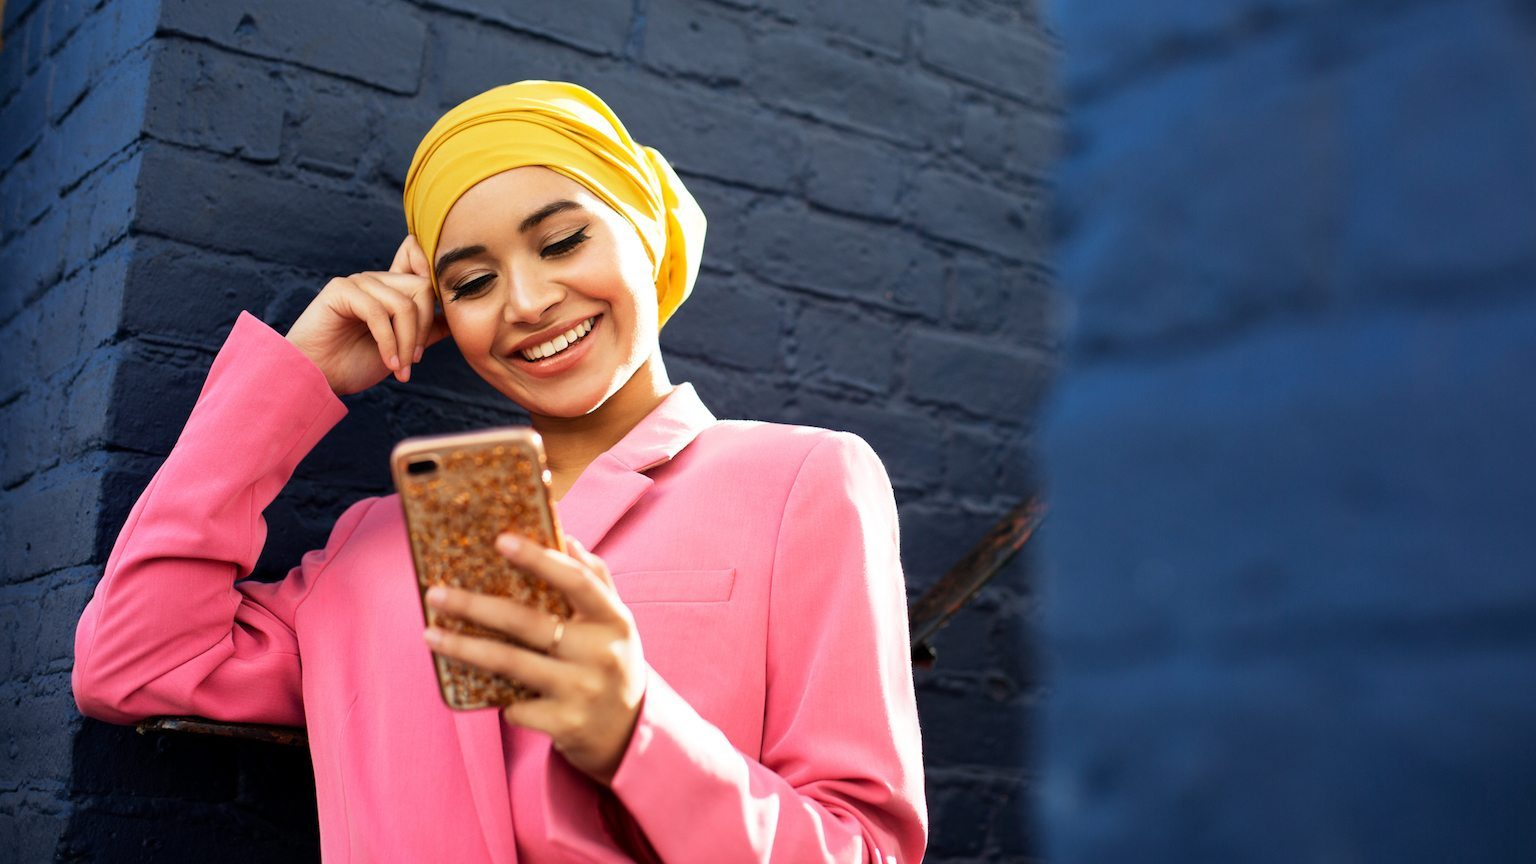 Young lady checking phone and smiling.